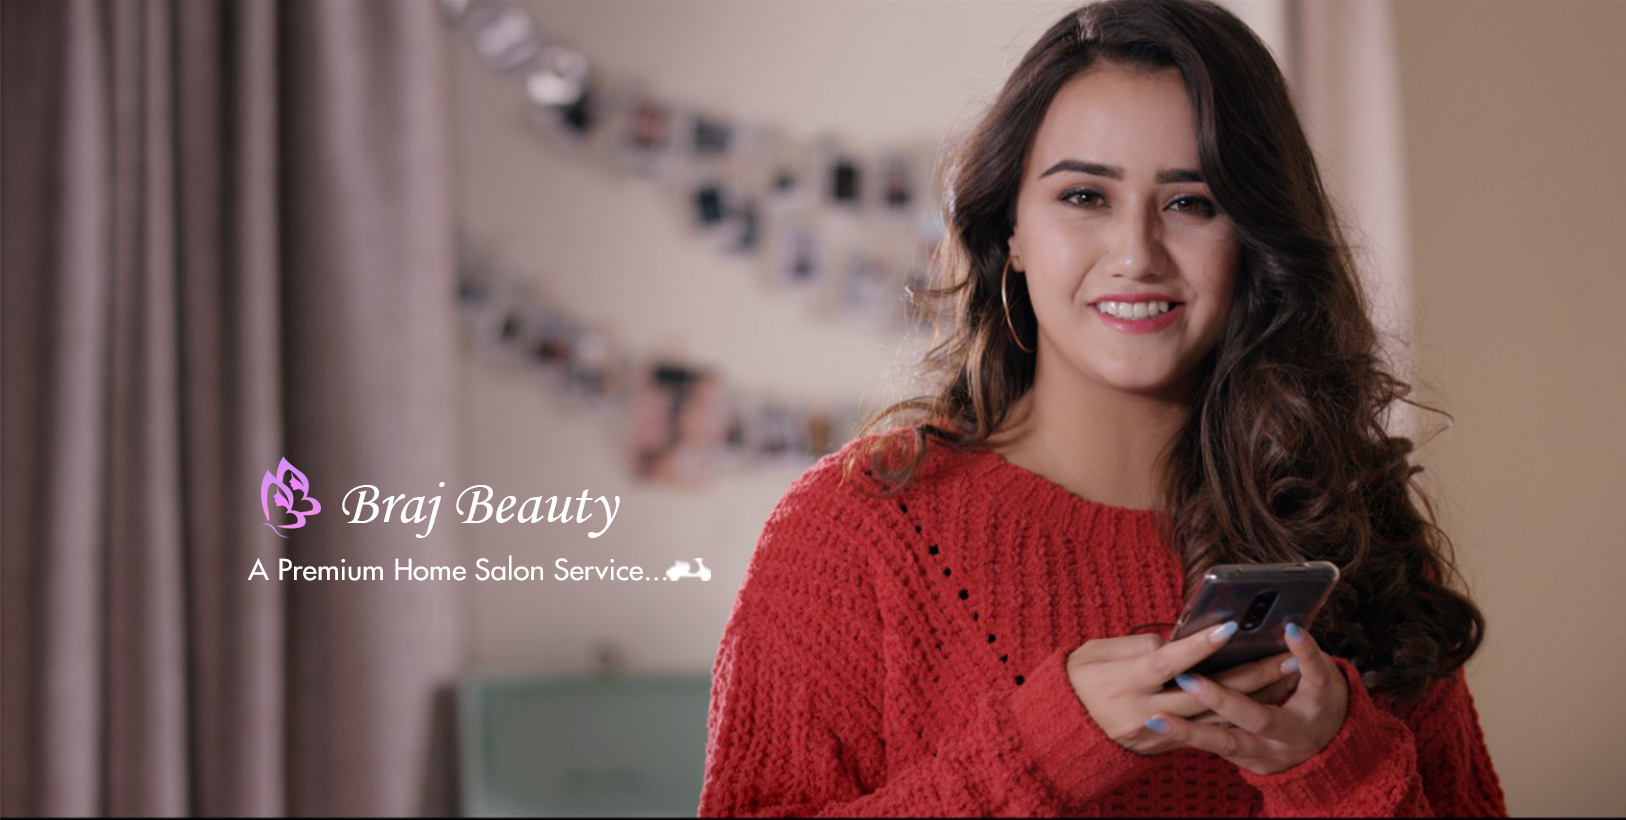 Braj Beauty online home salon service